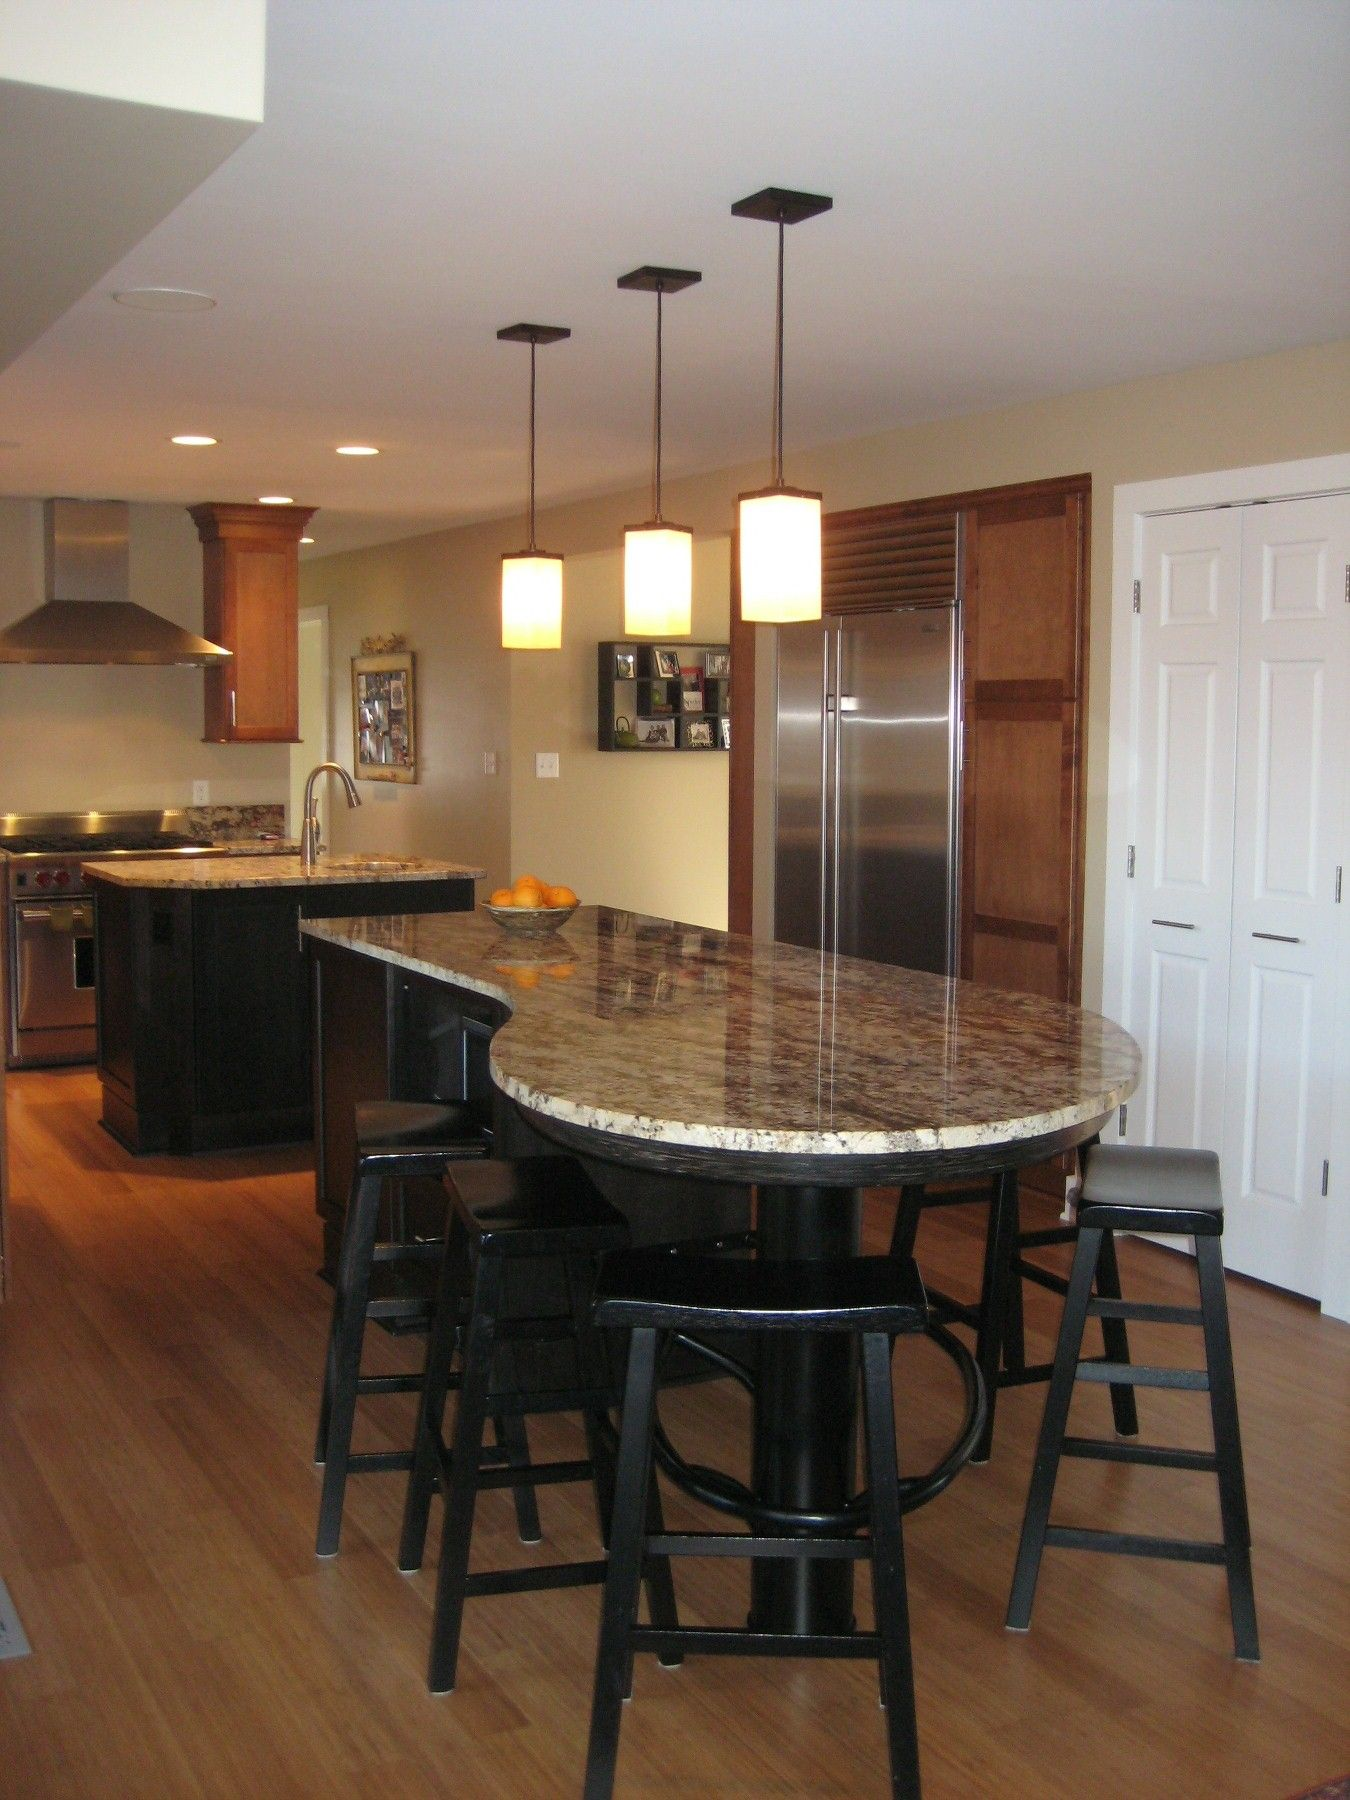 narrow kitchen countertops cabinet pulls long designs posted on april 20 2013 by